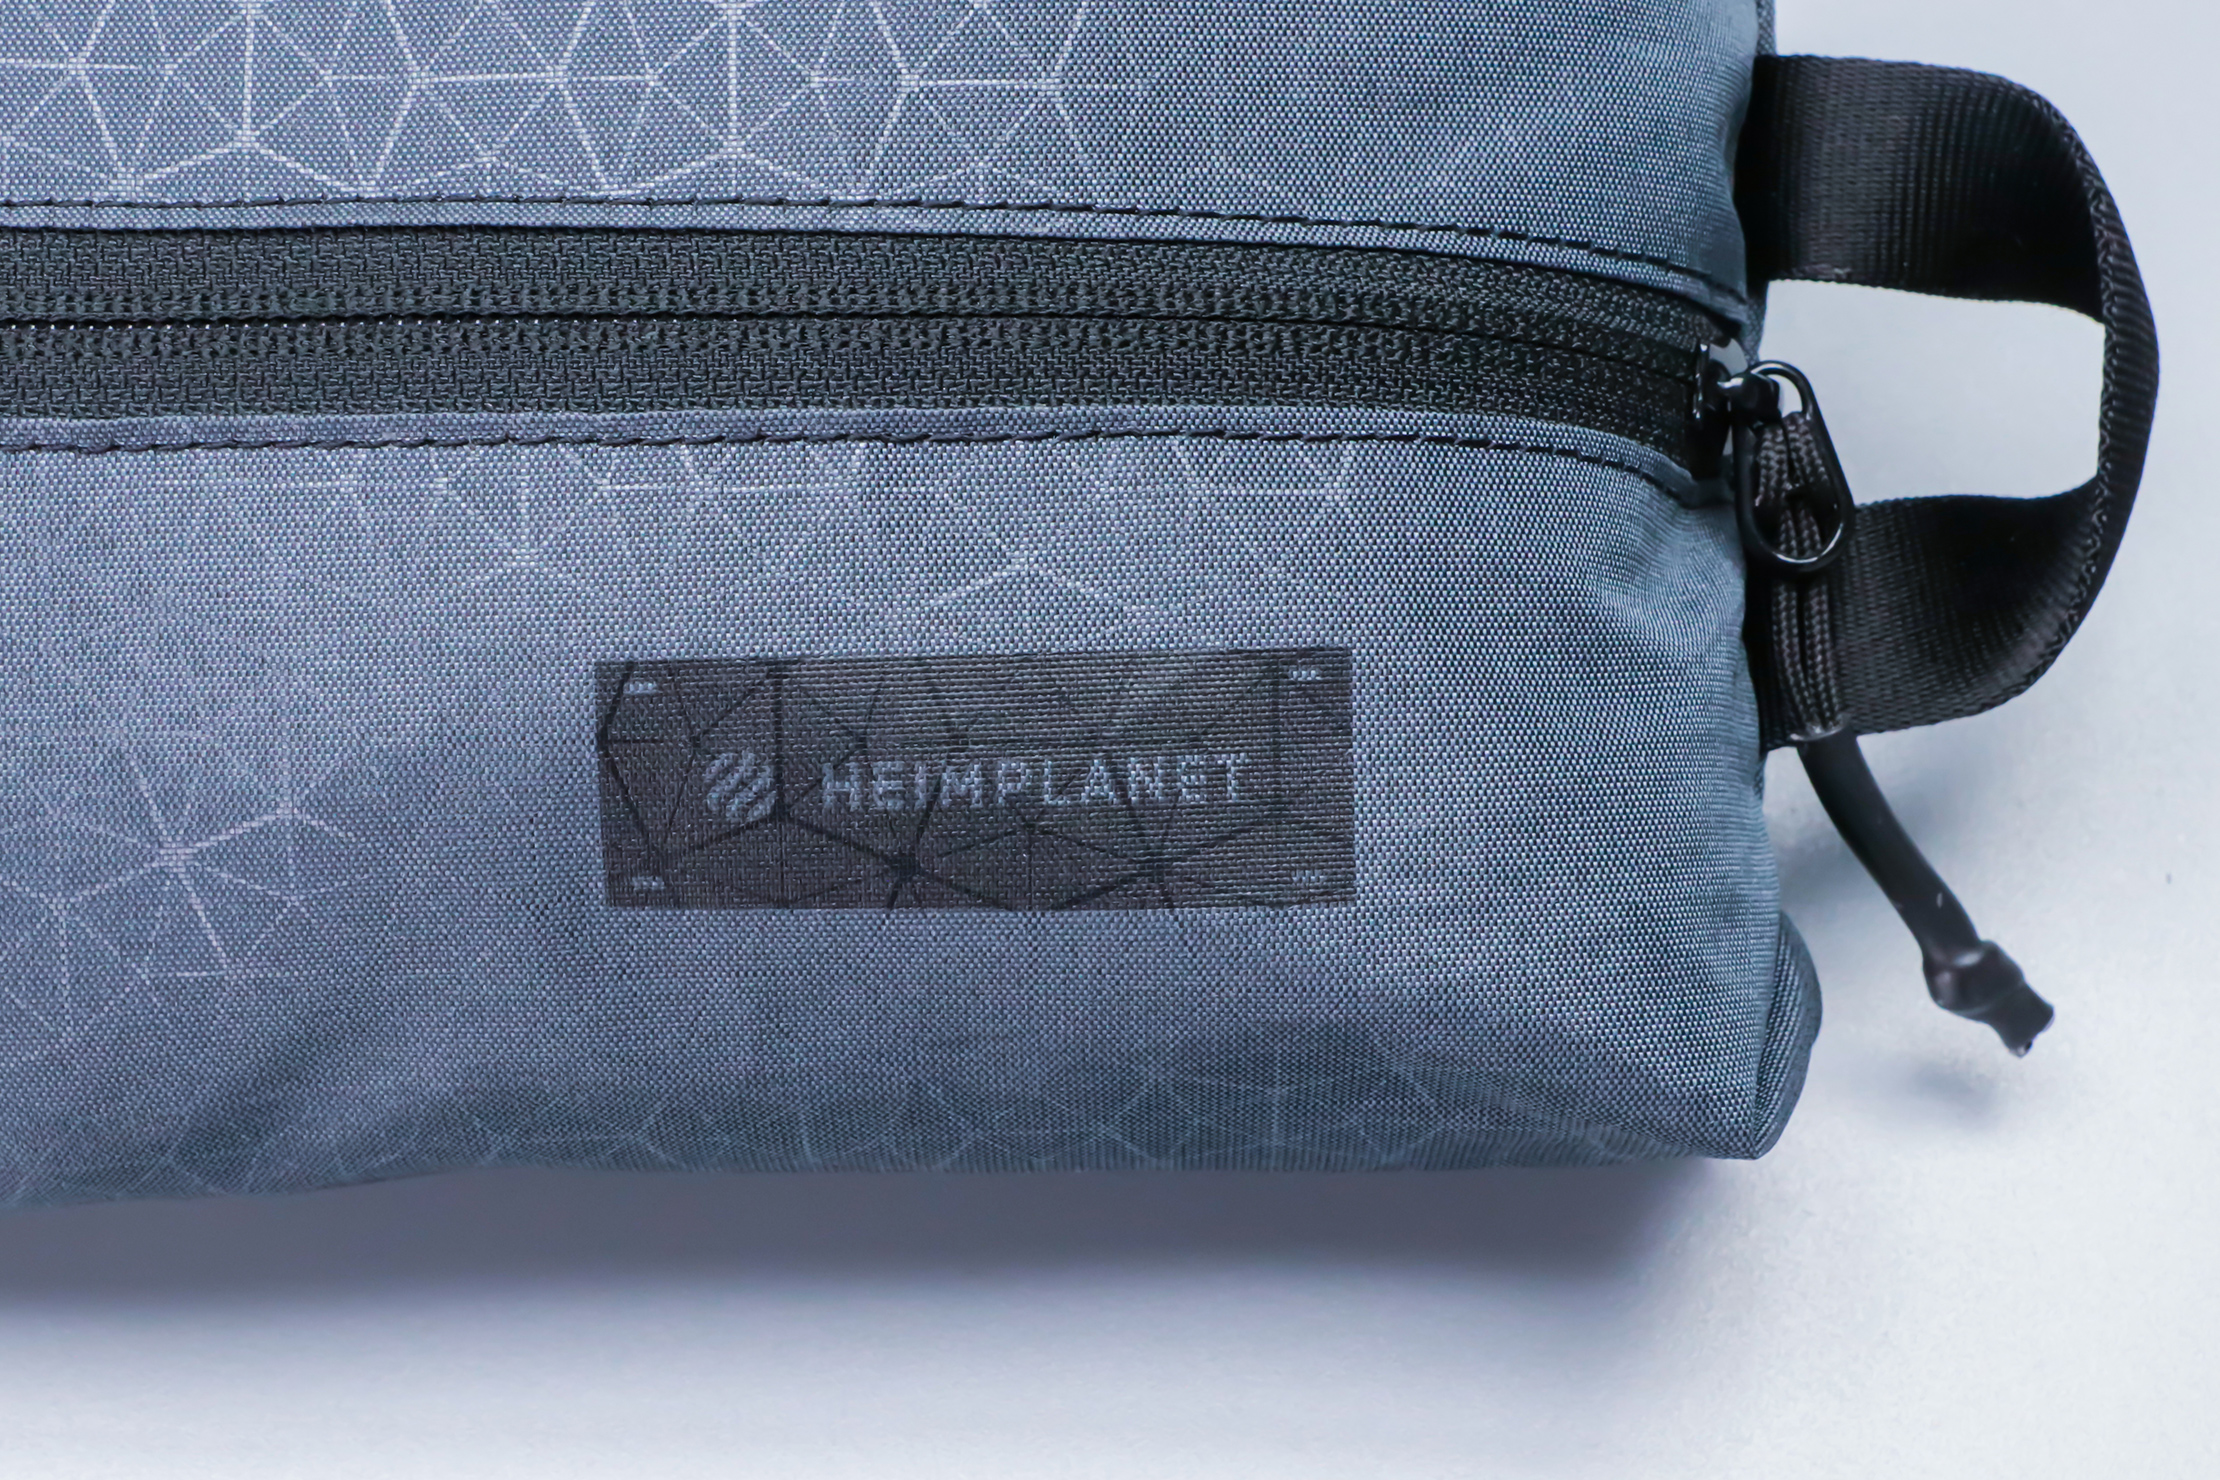 Heimplanet Packing Cubes Logo and Pattern